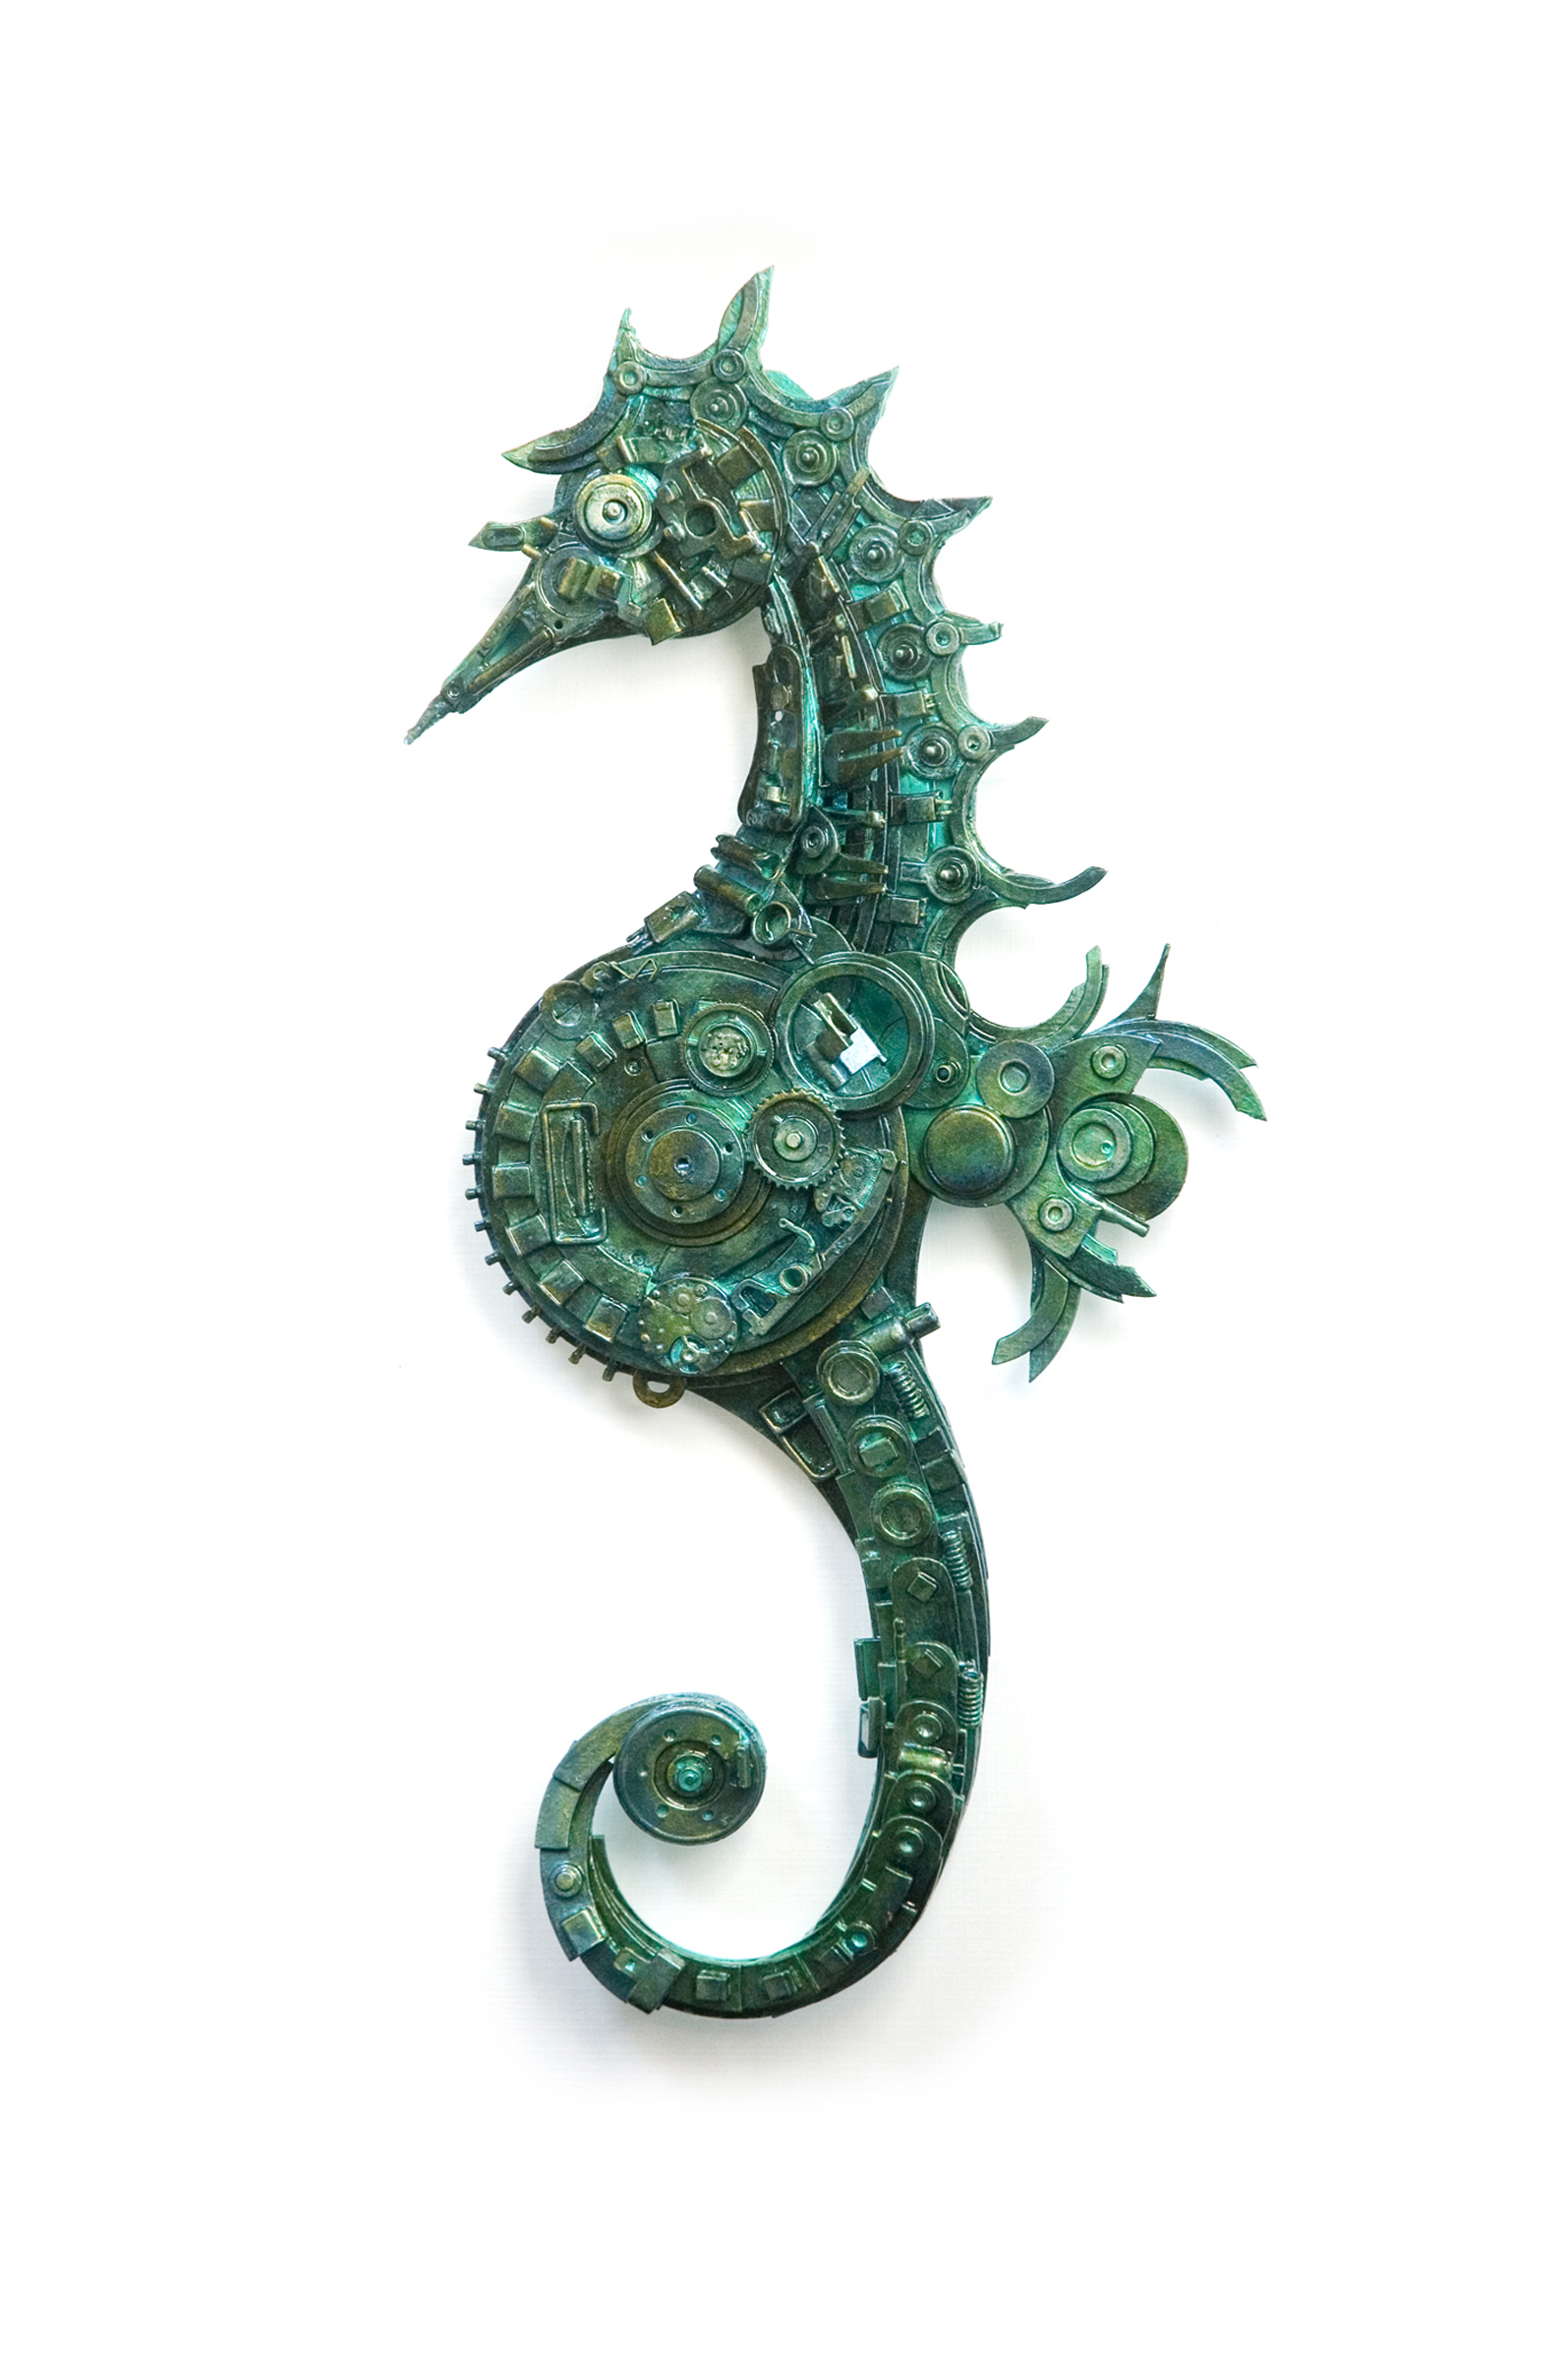 Hippocampus (sea horse) by Haribabu-mixed media